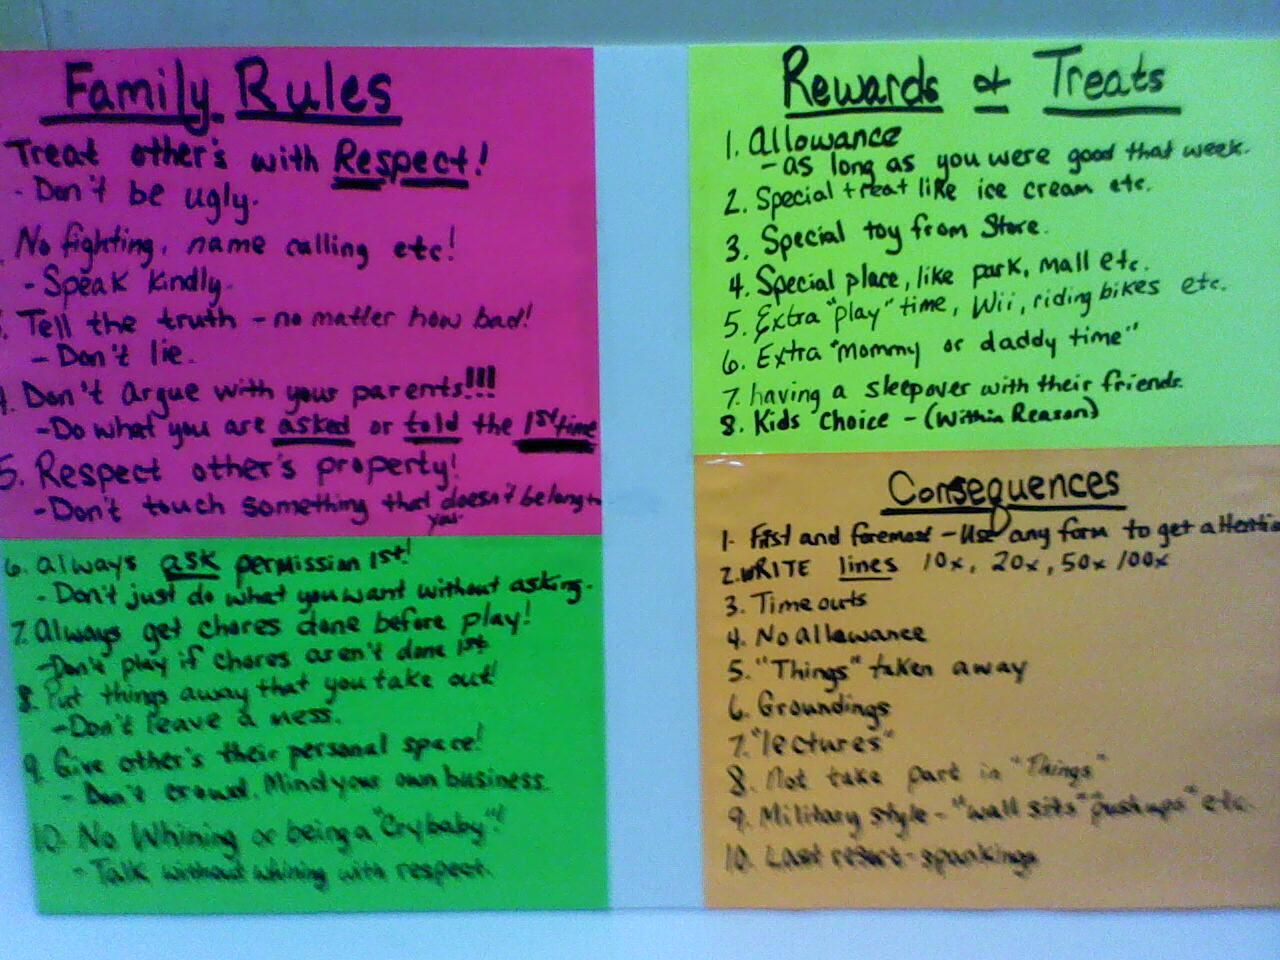 This Is A Family Rule Chart With Rewards And Consequences